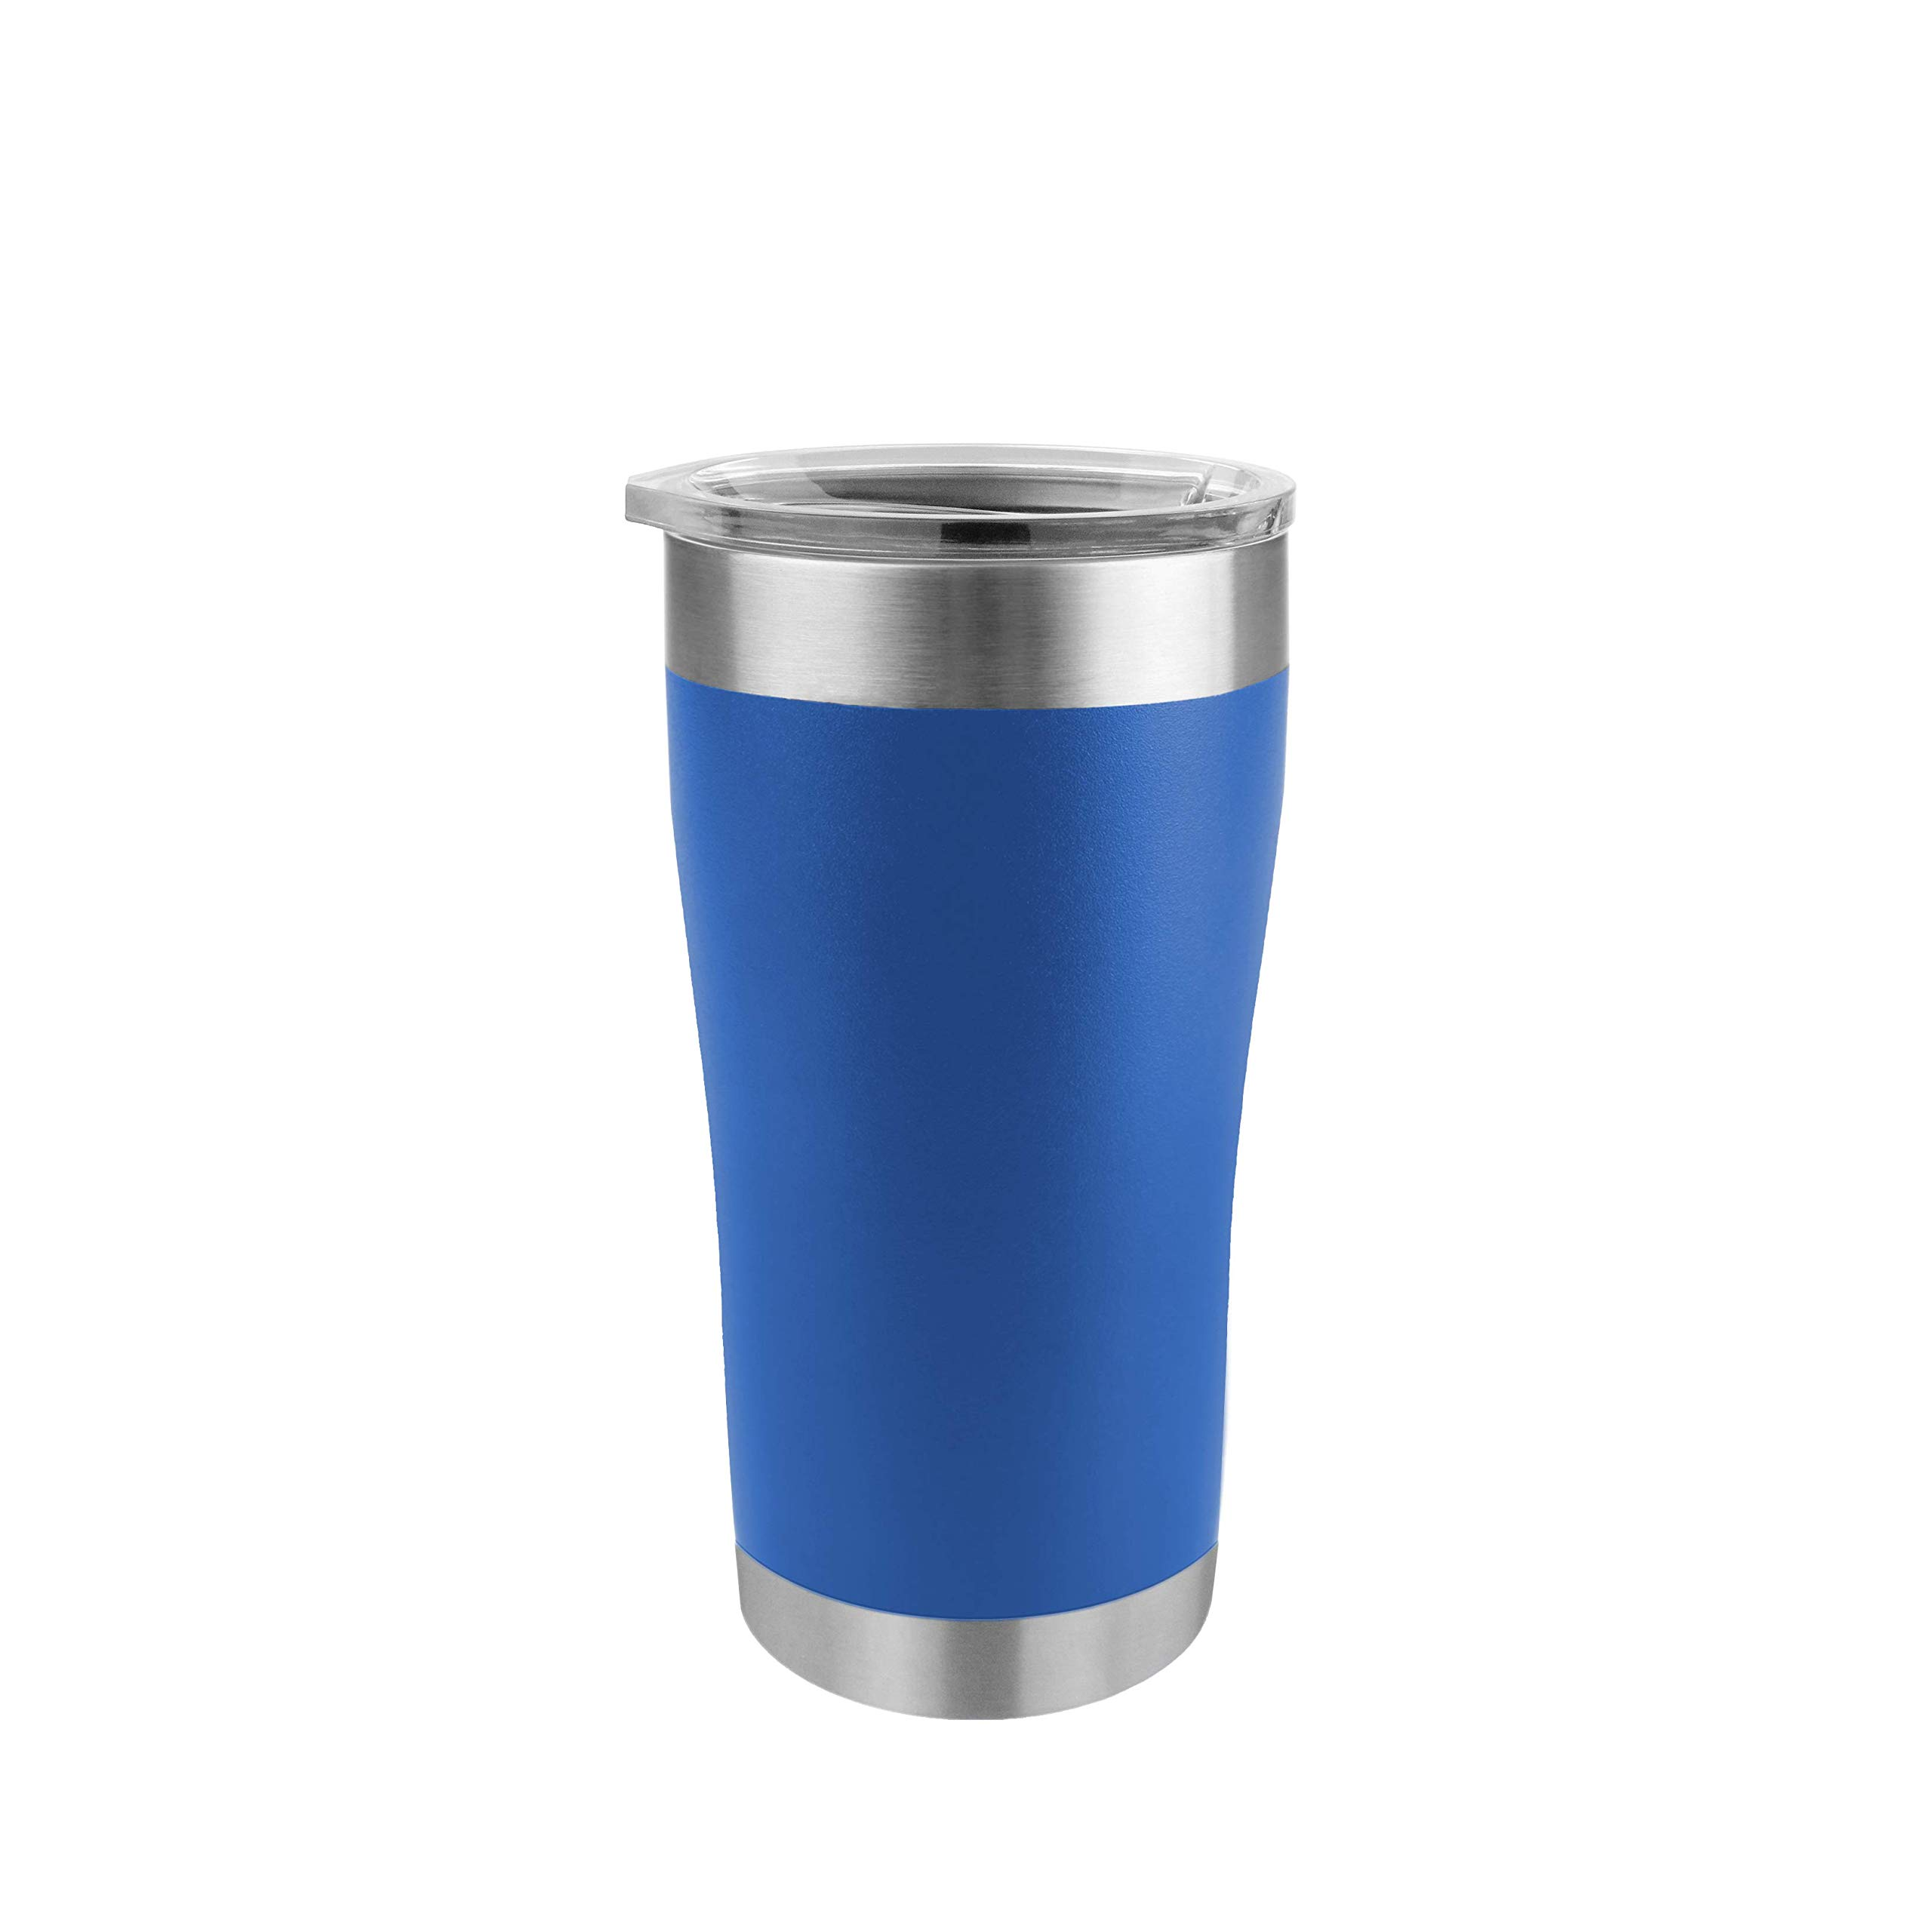 Tempercraft 20 oz Vacuum Insulated Tumbler w/Lid and Laser Engraved Customization Options - Stainless Steel, Double-Walled Travel Mug (Blue)